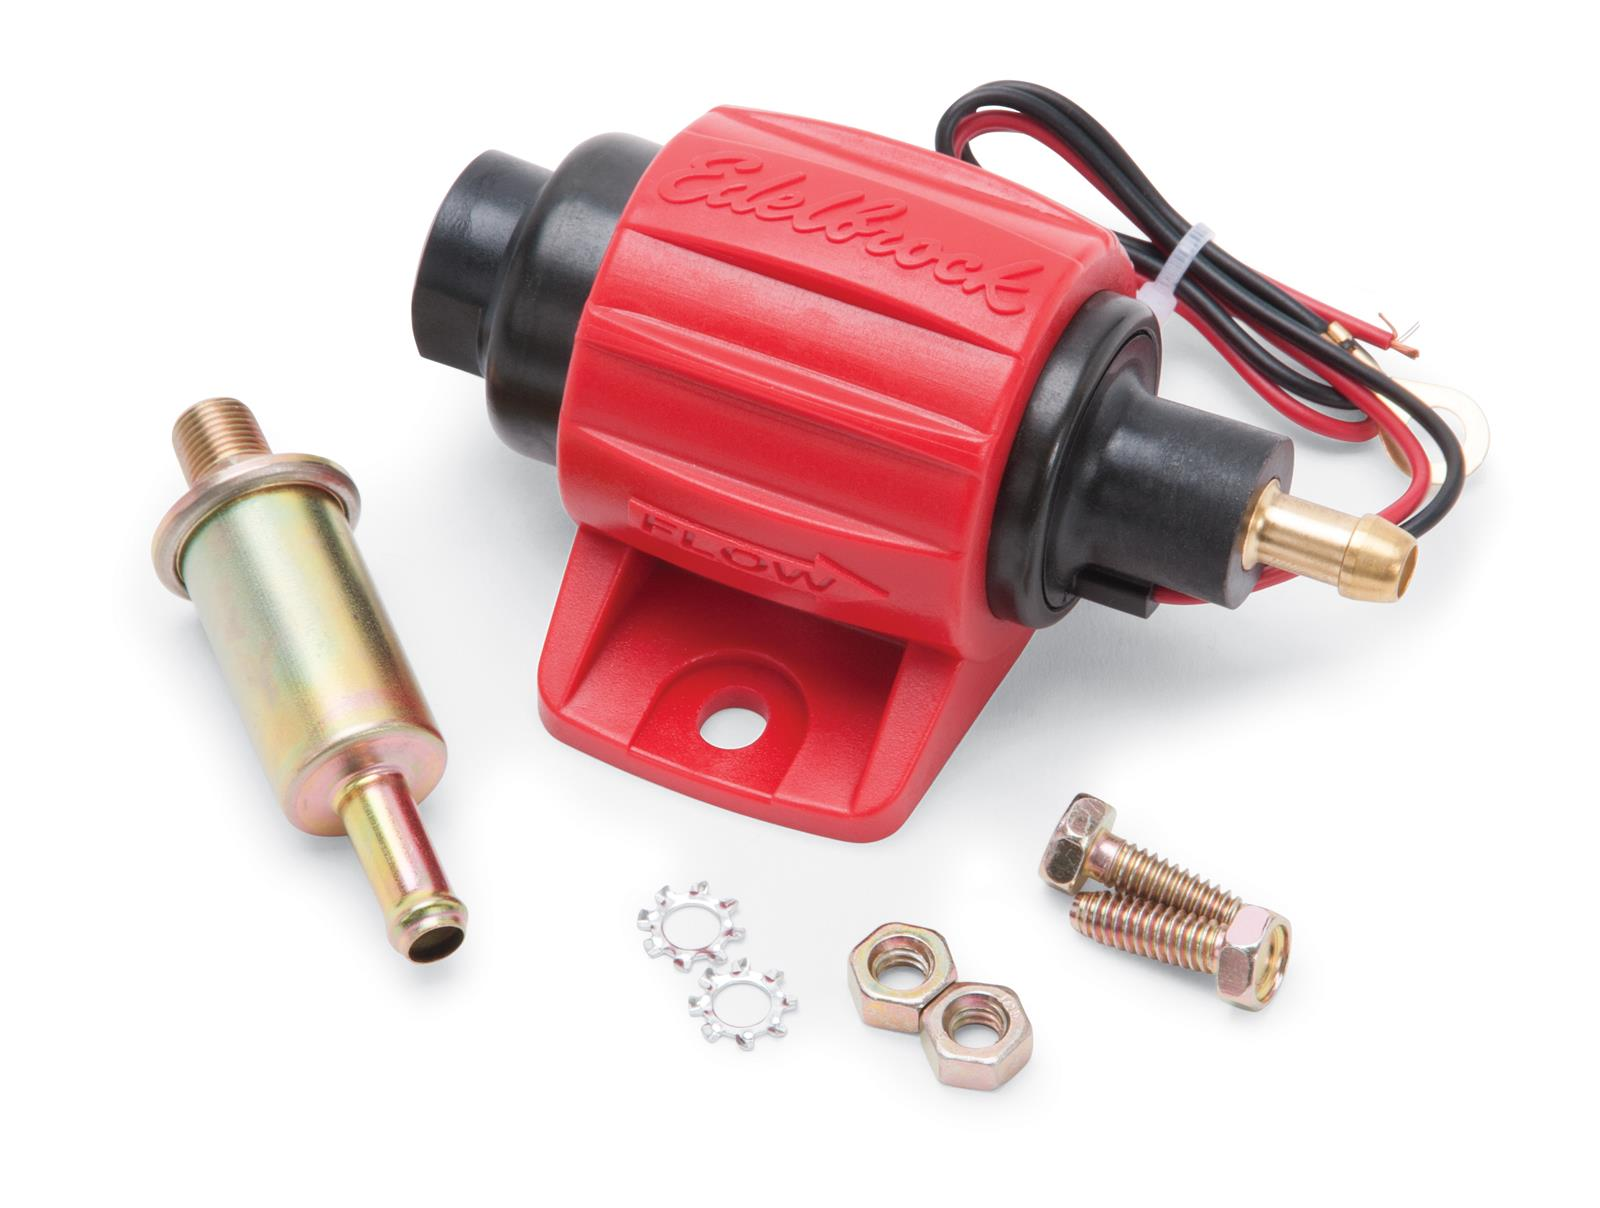 Edelbrock Universal Micro Electric Fuel Pumps 17303 - Free Shipping on  Orders Over $99 at Summit Racing